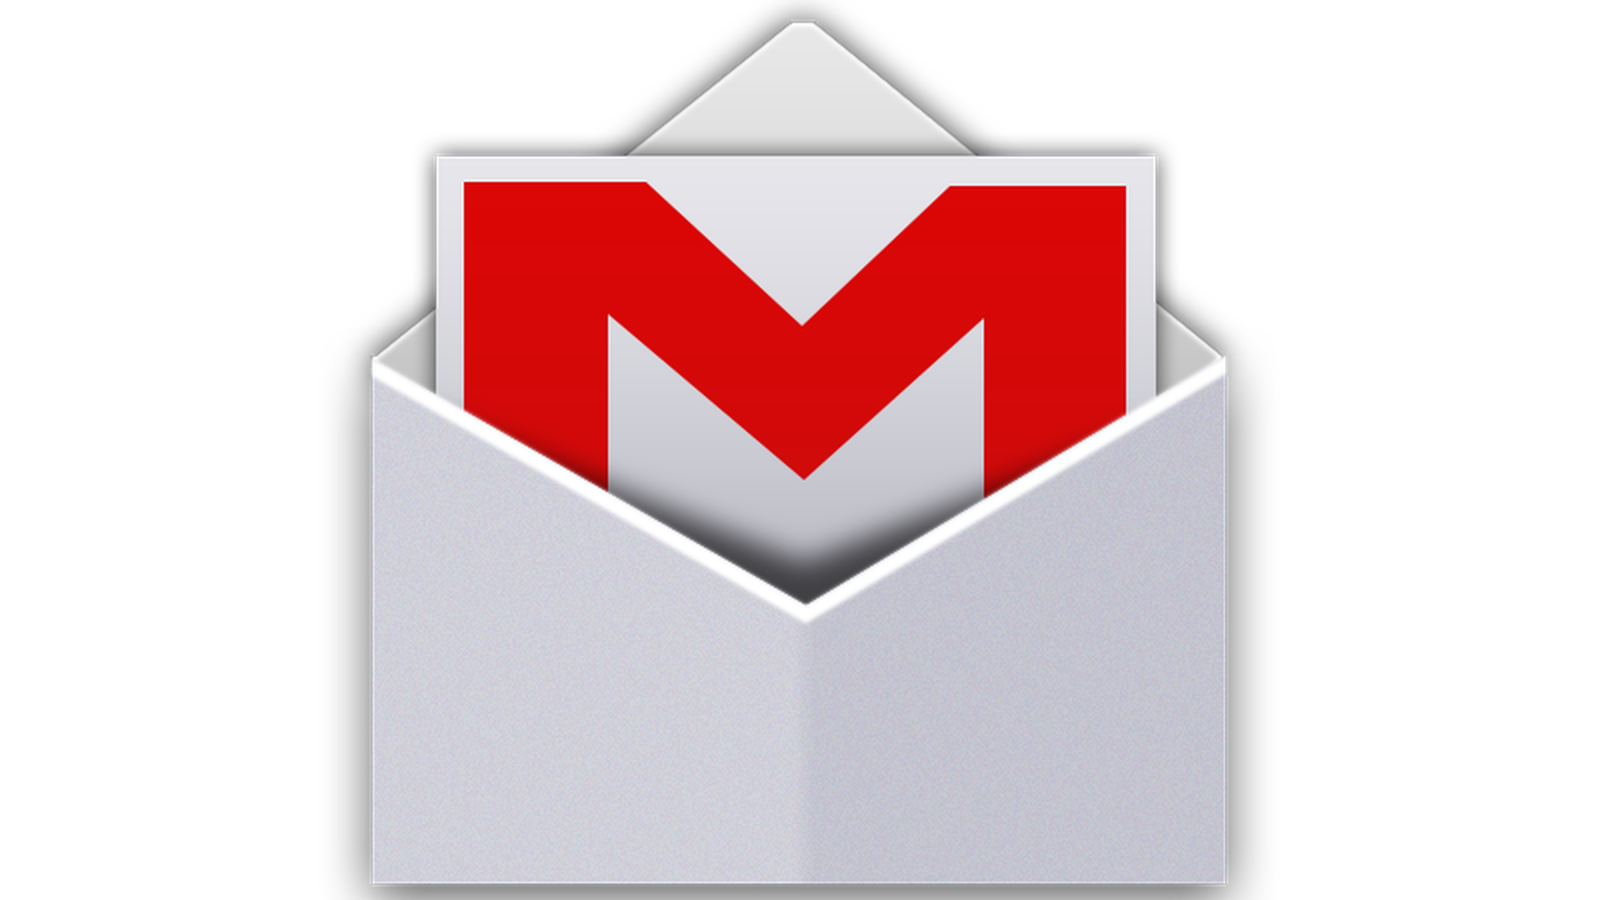 Gmail: Gmail Will Soon Alert Users About Unencrypted Emails